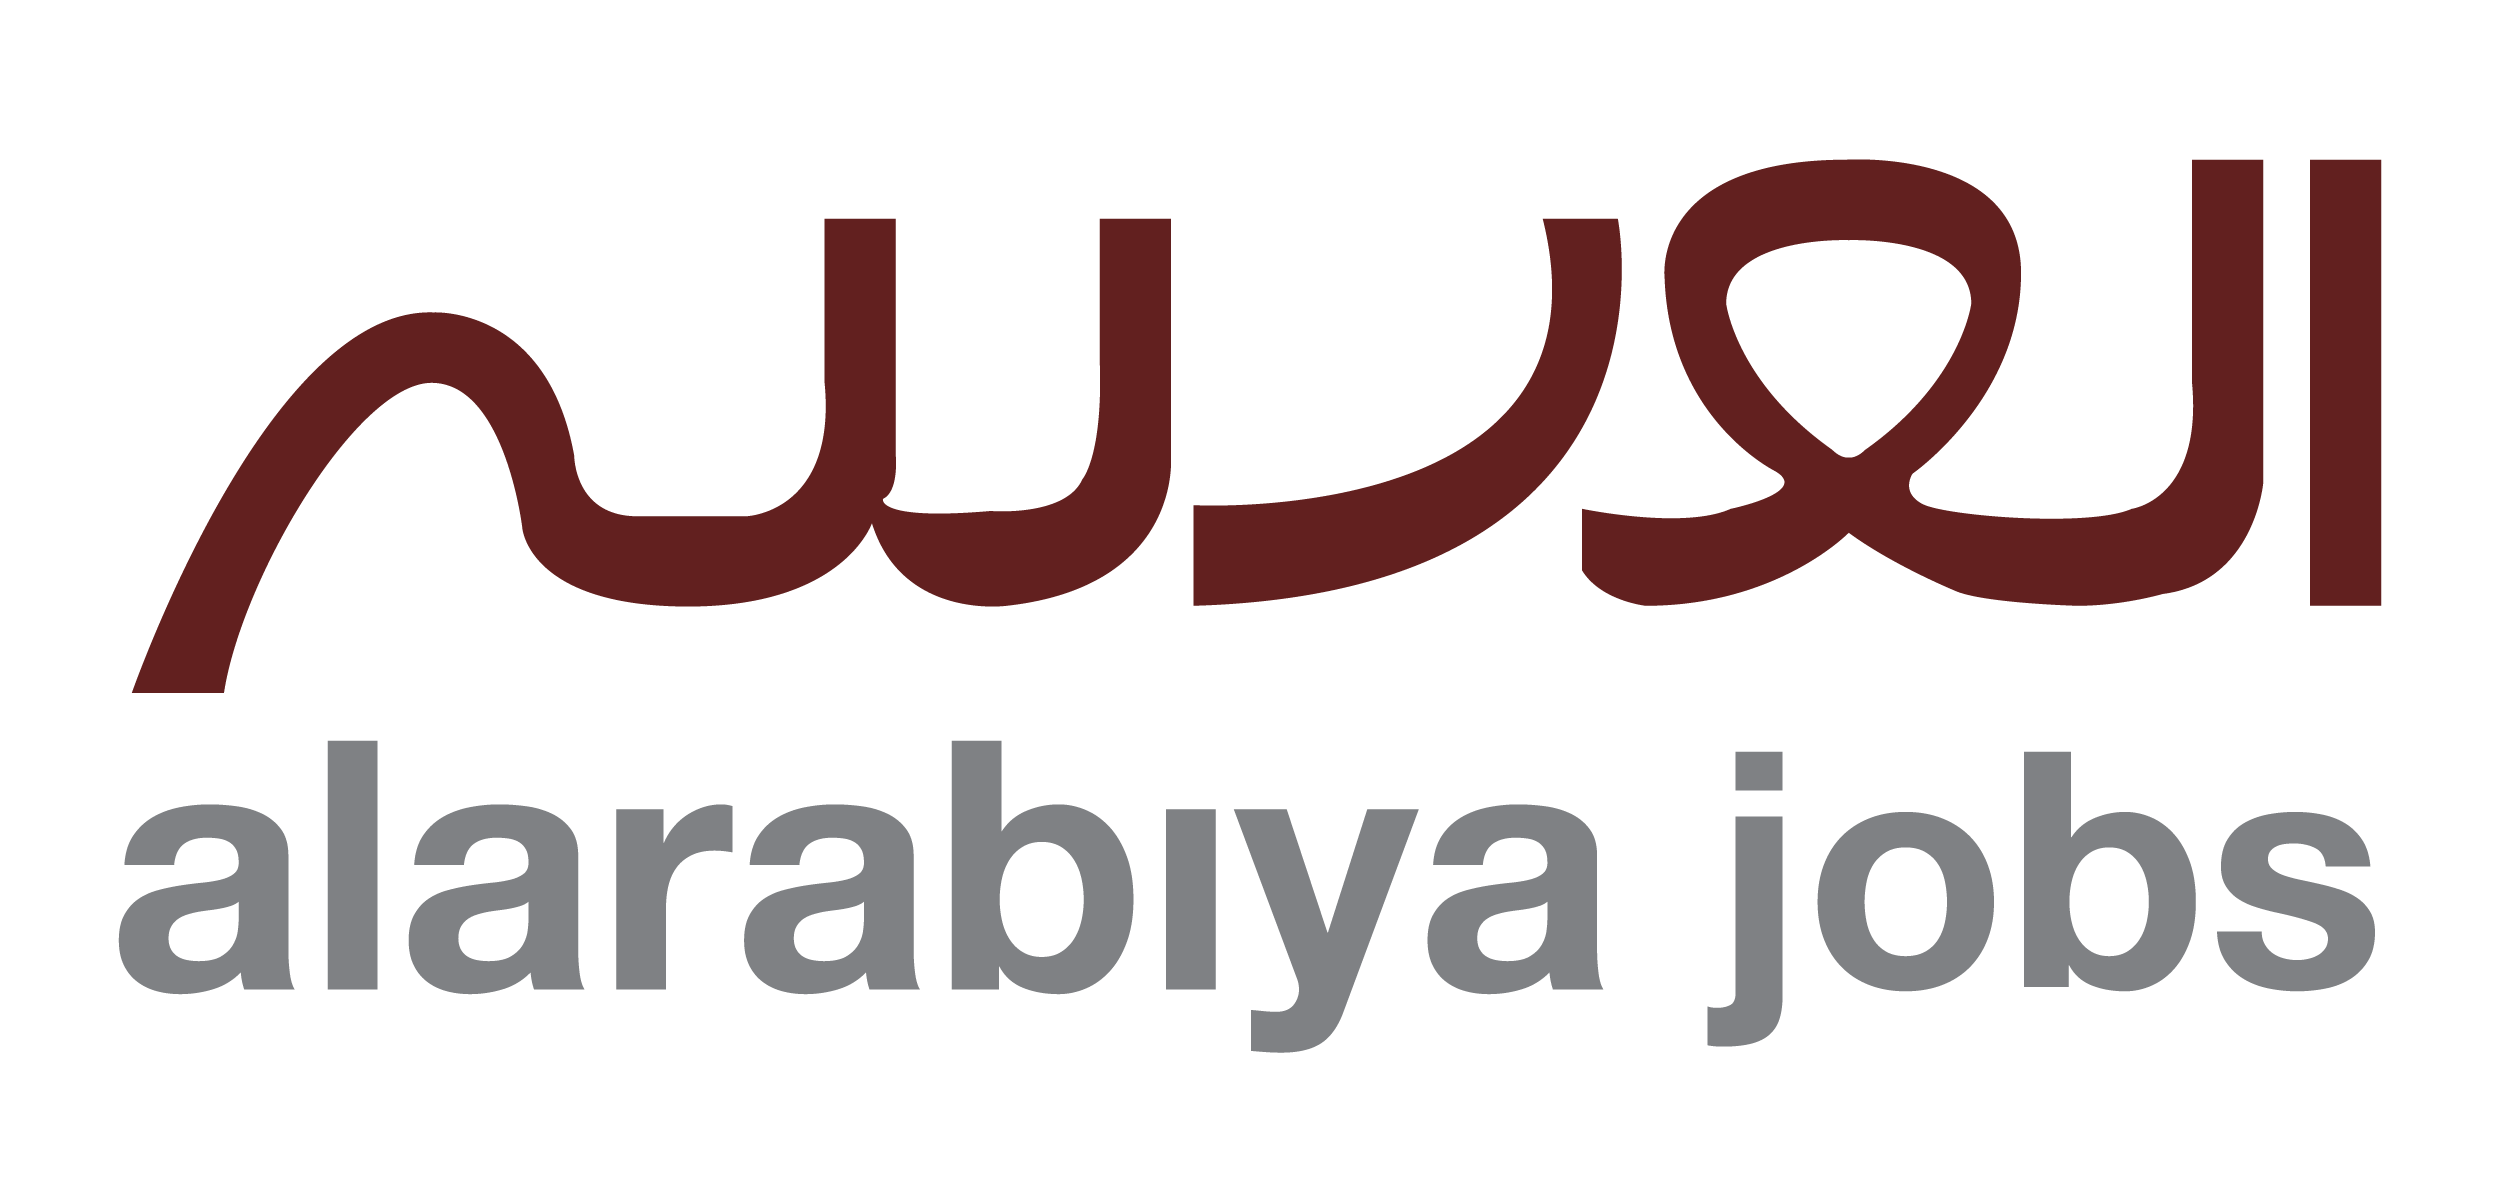 Al Arabiya Jobs